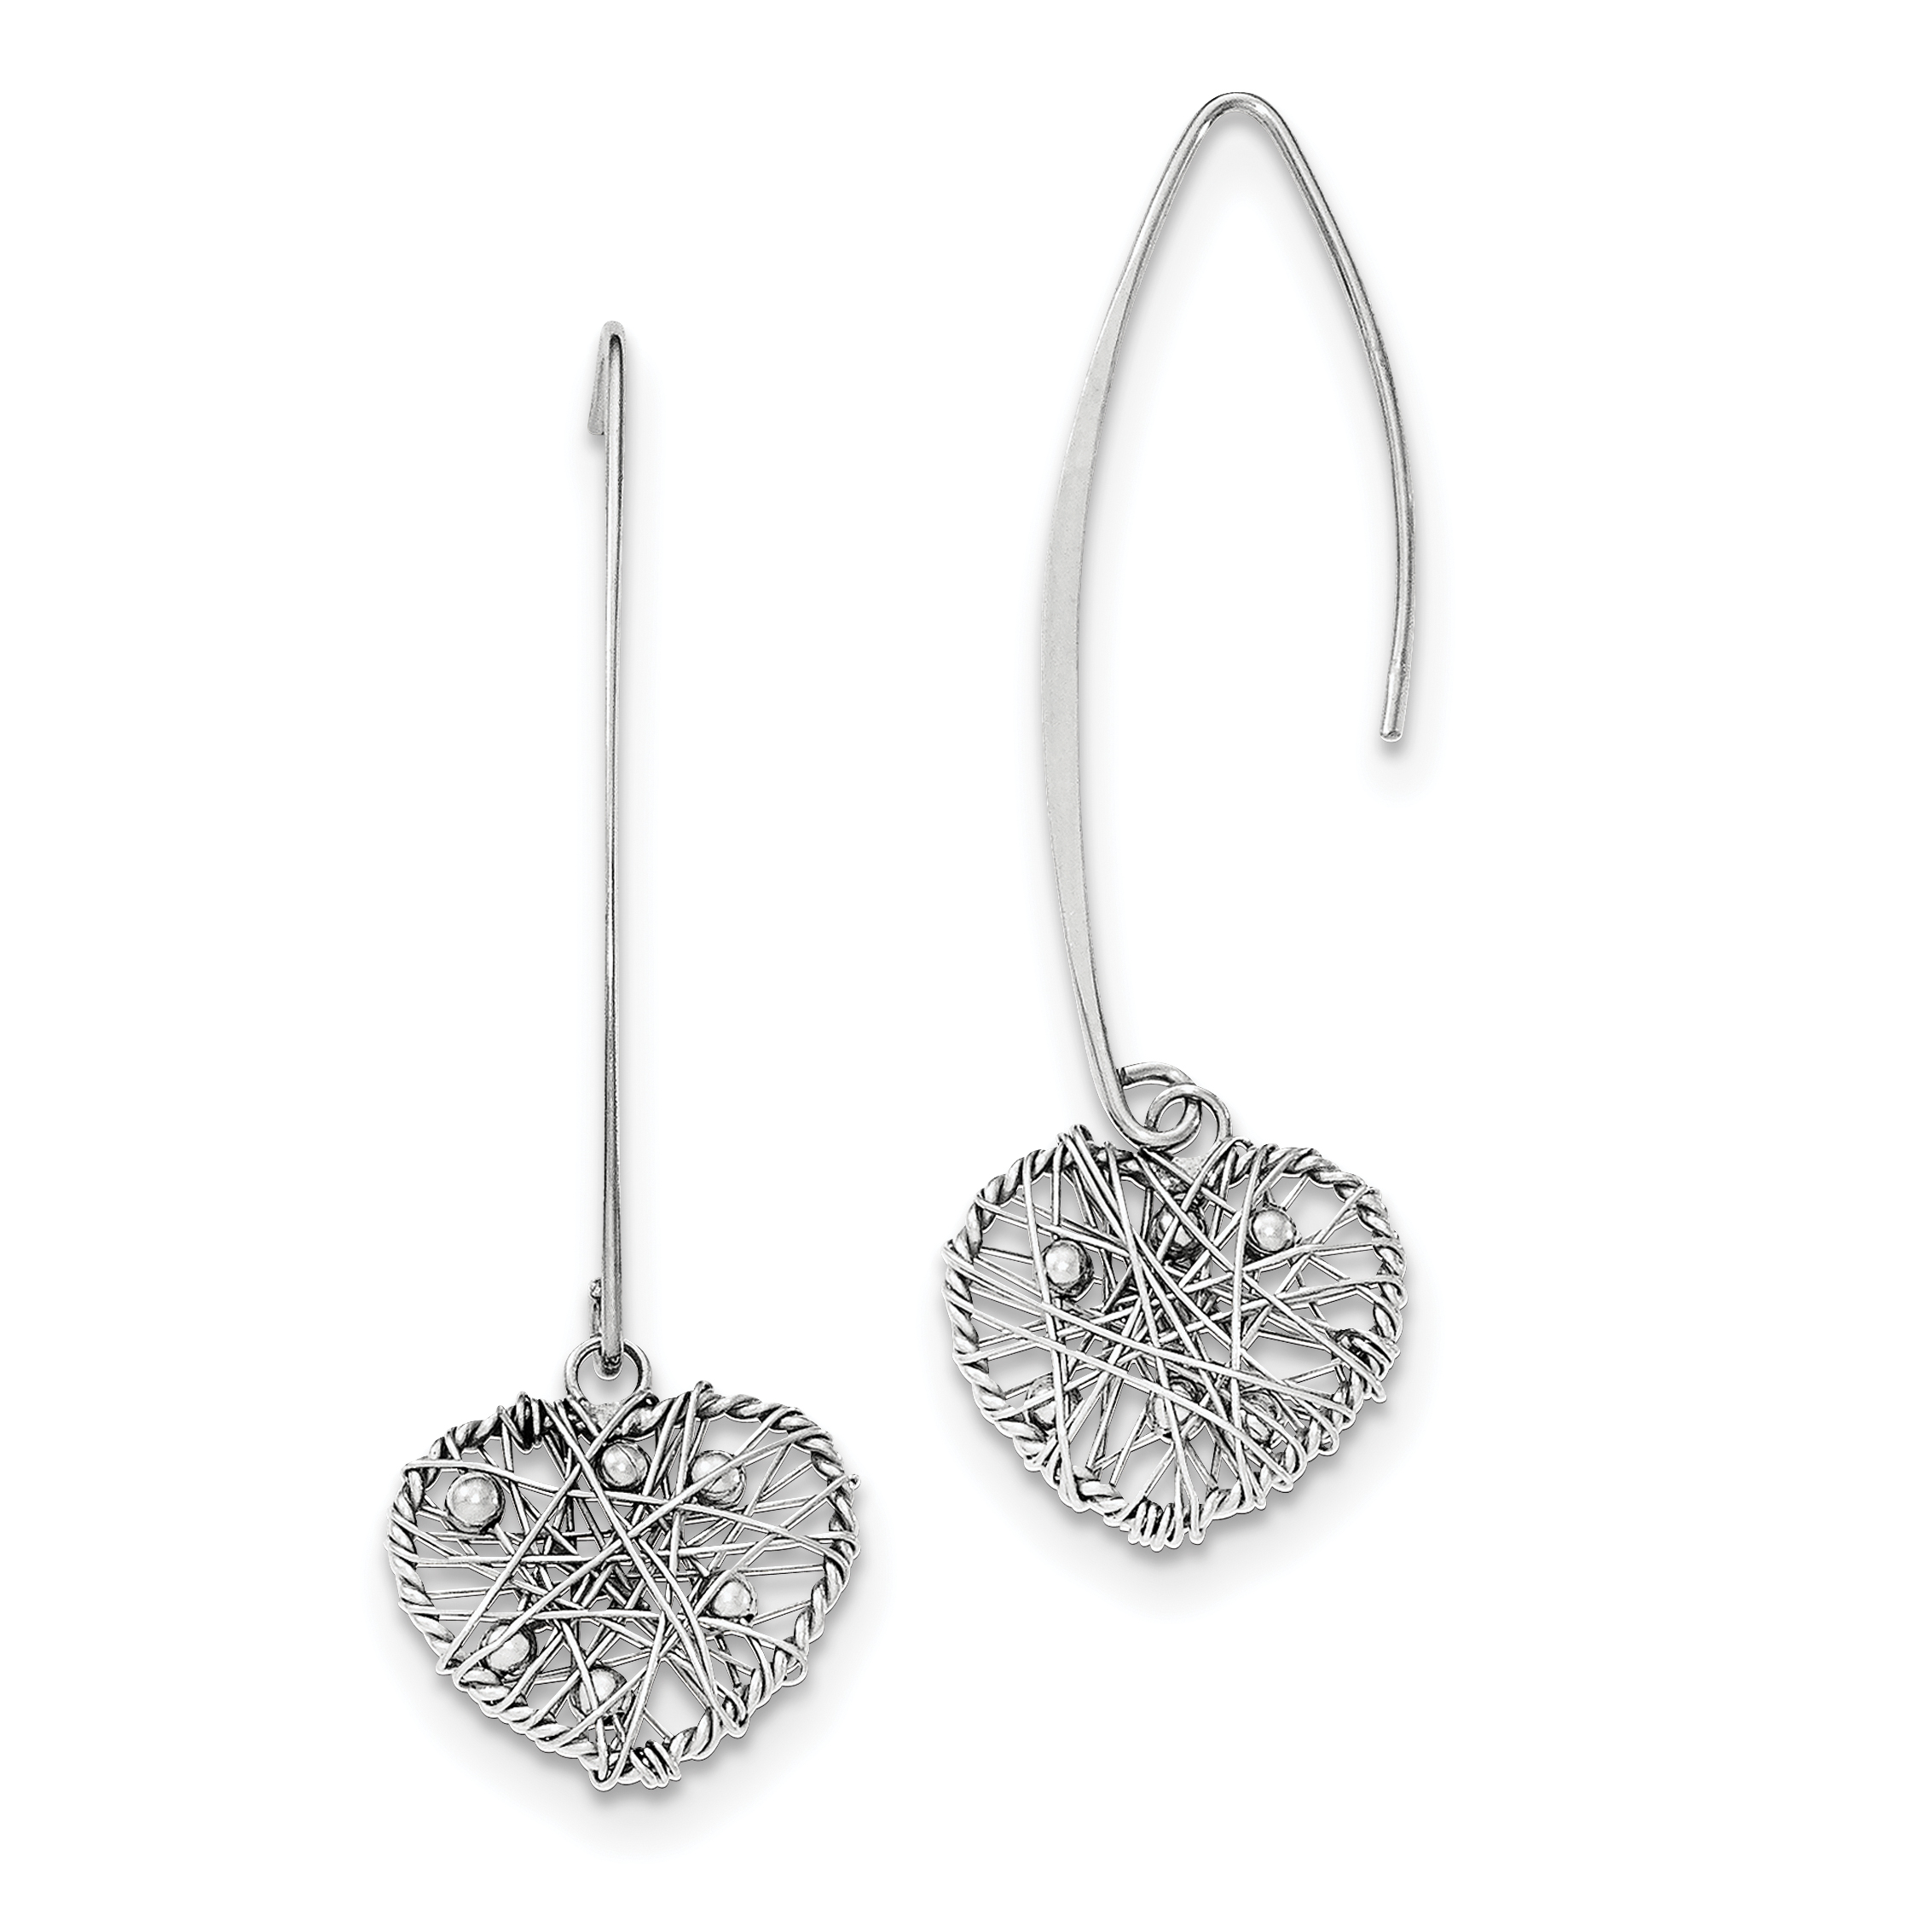 Sterling Silver Rhodium-plated Polished Heart Threader Earrings QE11771 - image 2 of 2